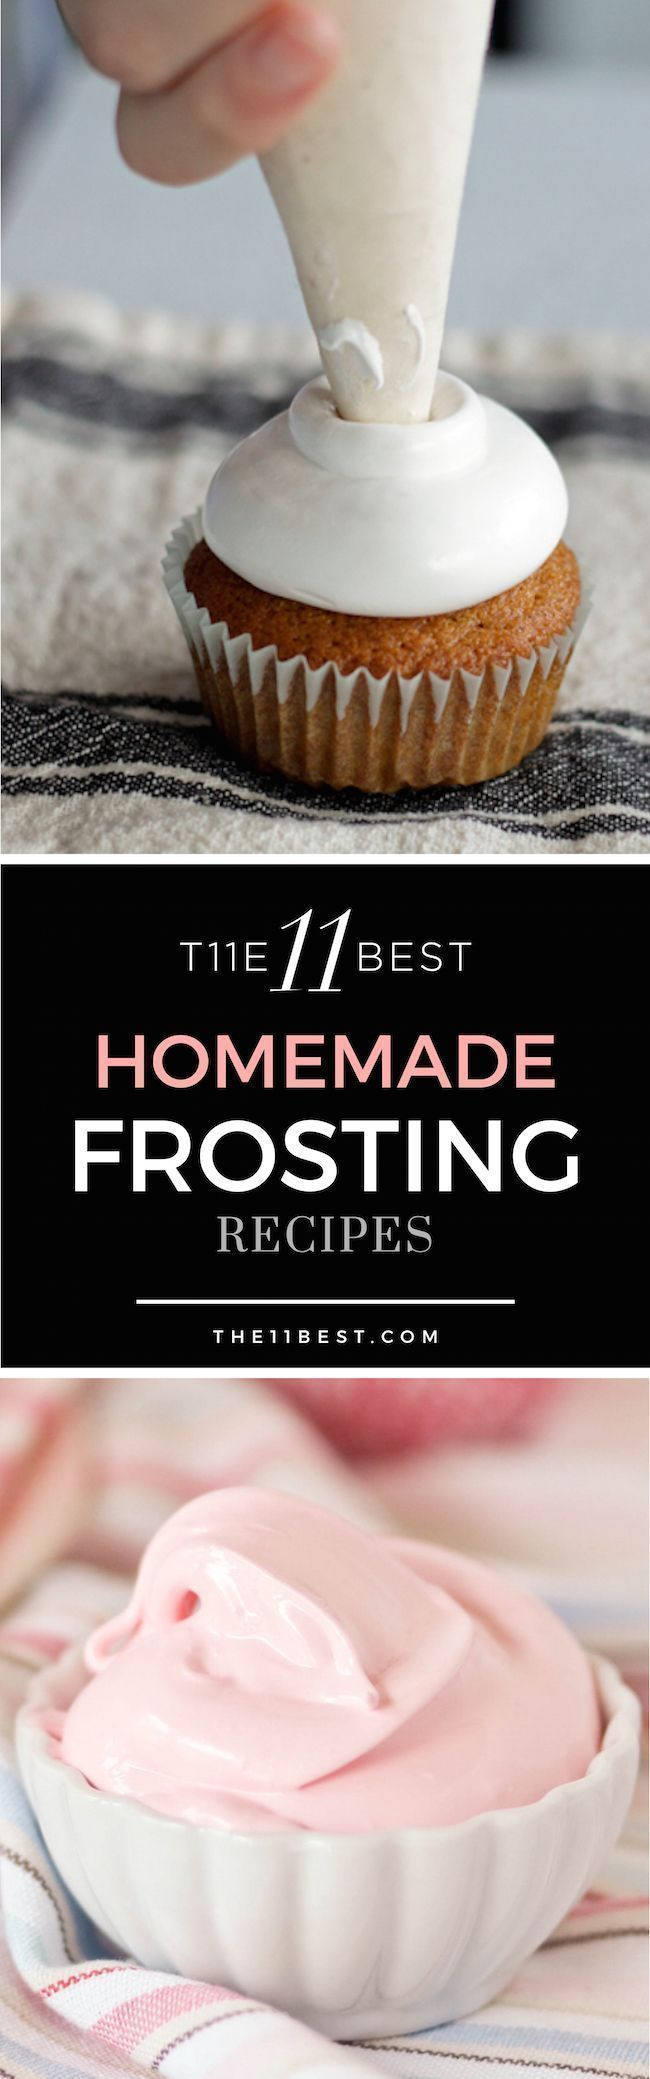 The 11 Best Homemade Frosting Recipes (Best Honey Ham Recipe)